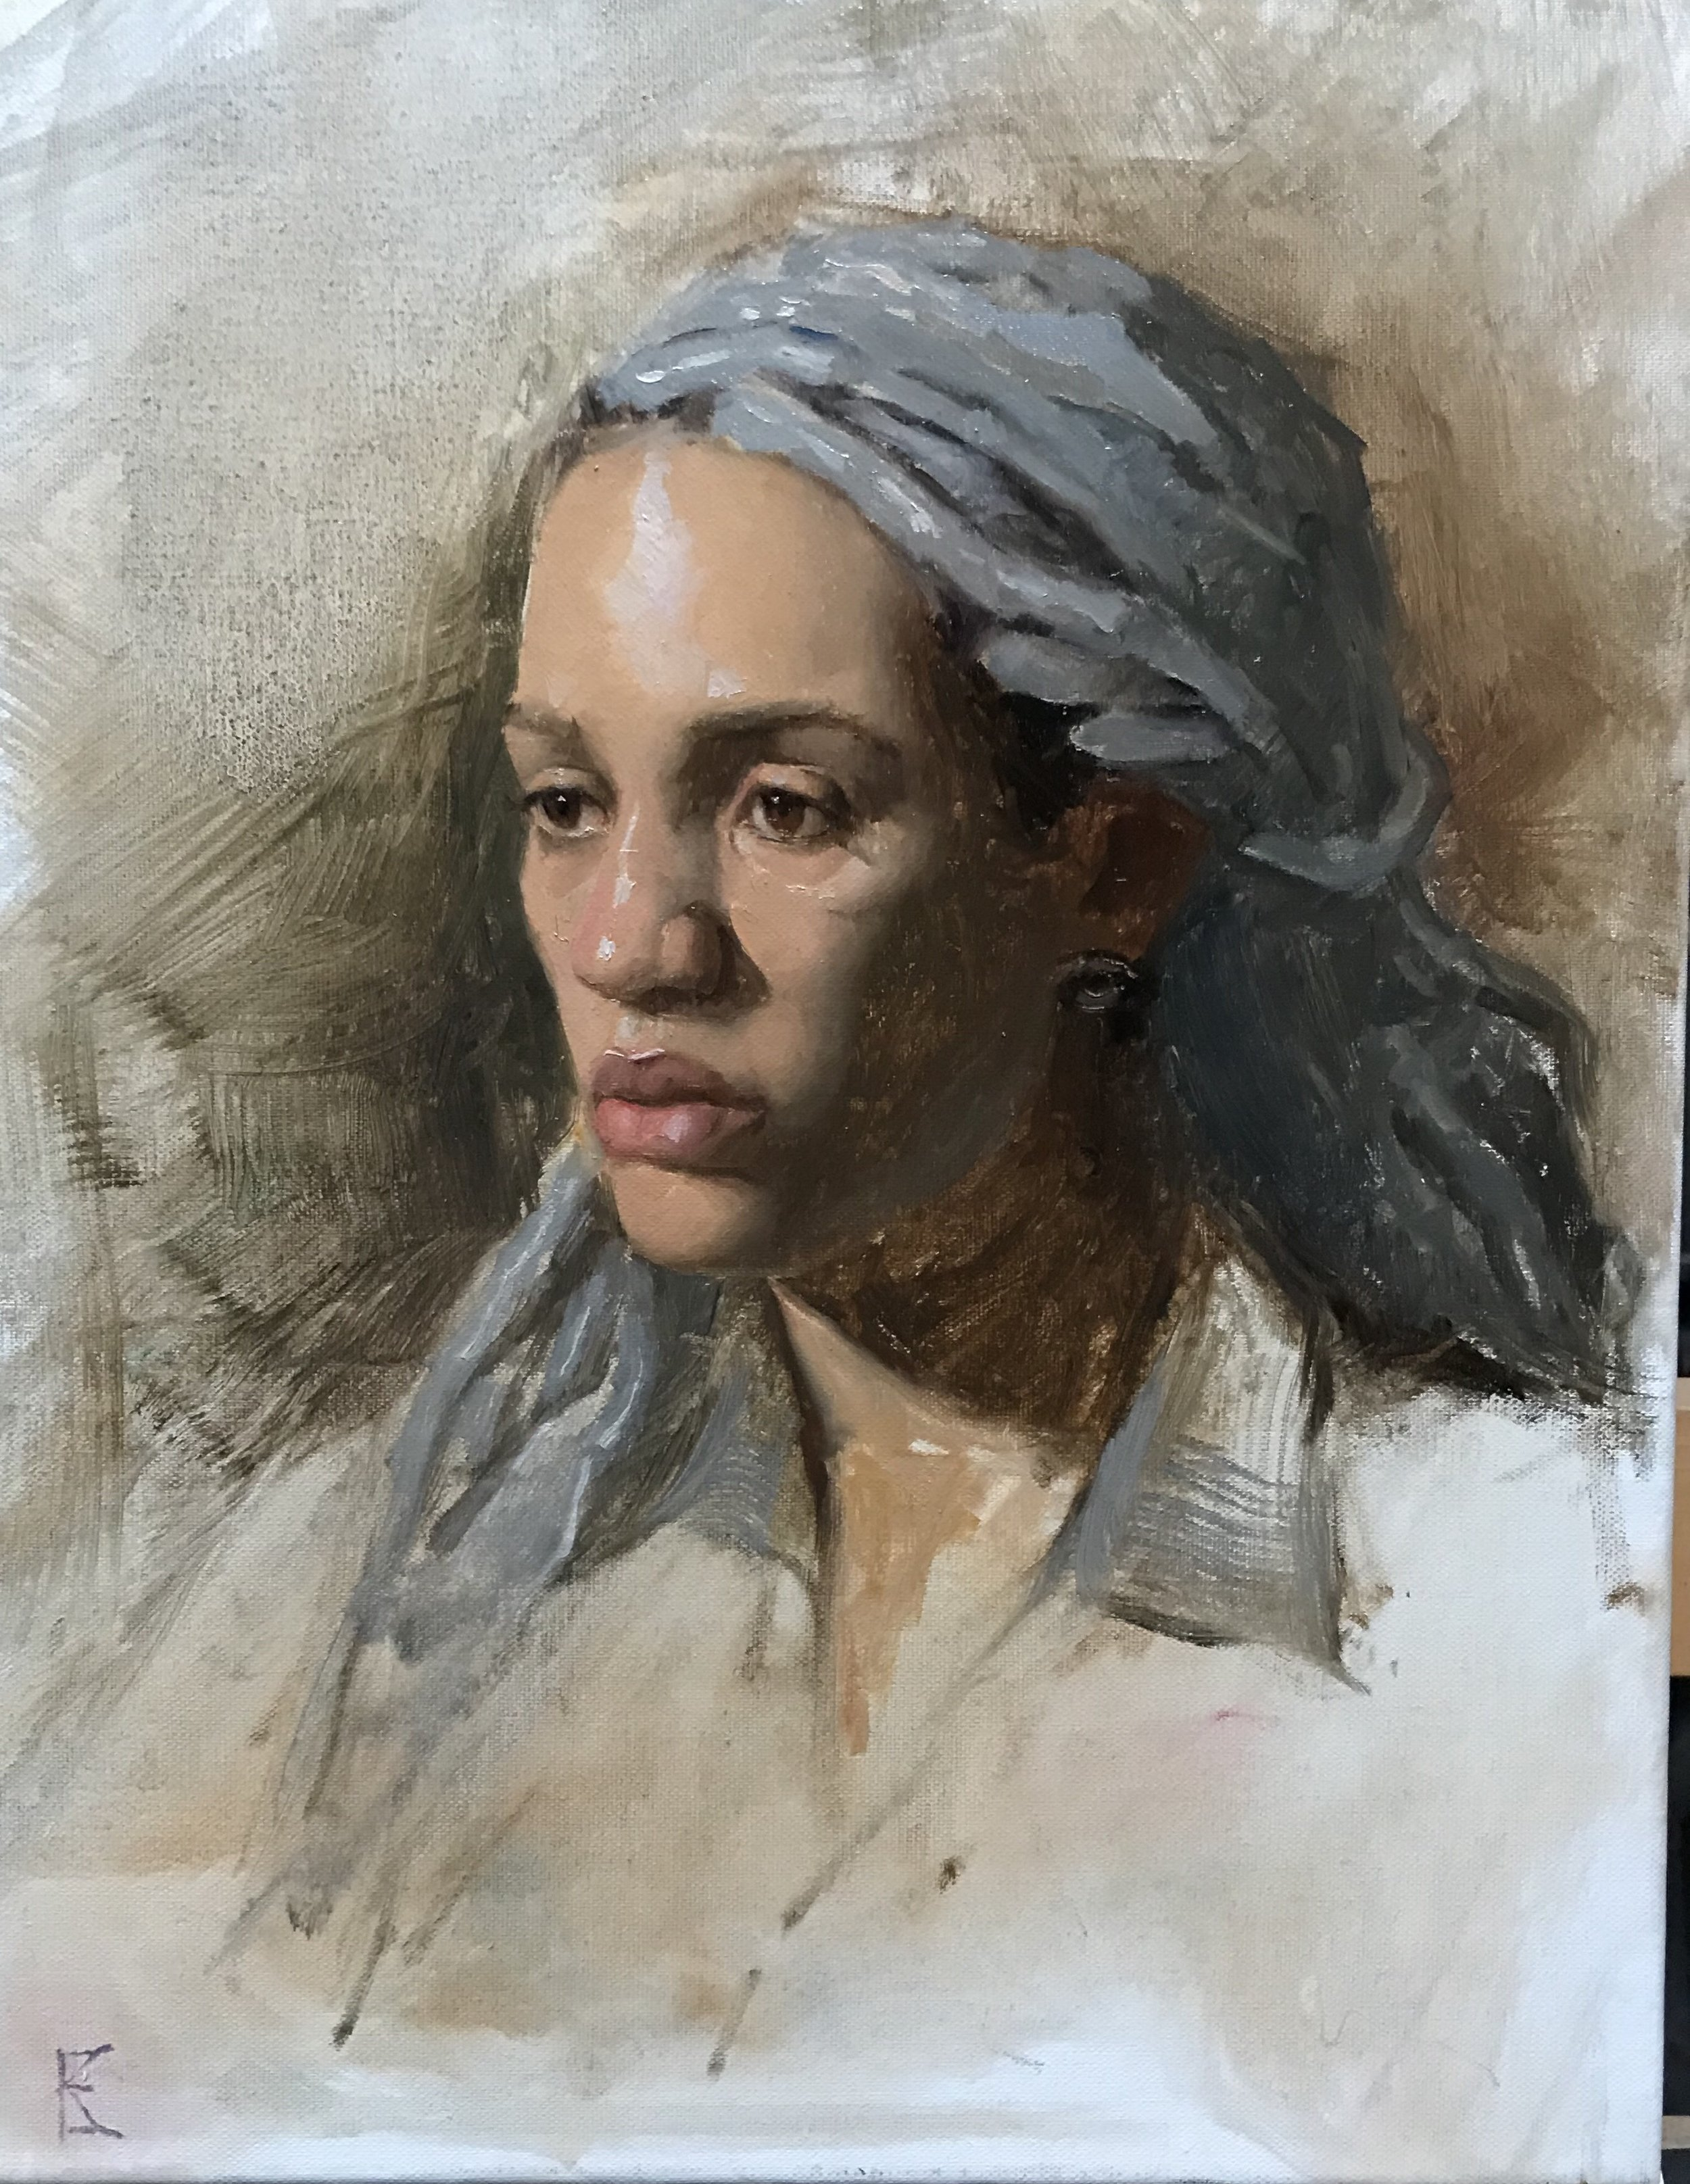 Kimmah  by Kathryn Engberg, 2018 14 x 11 in, oil on linen